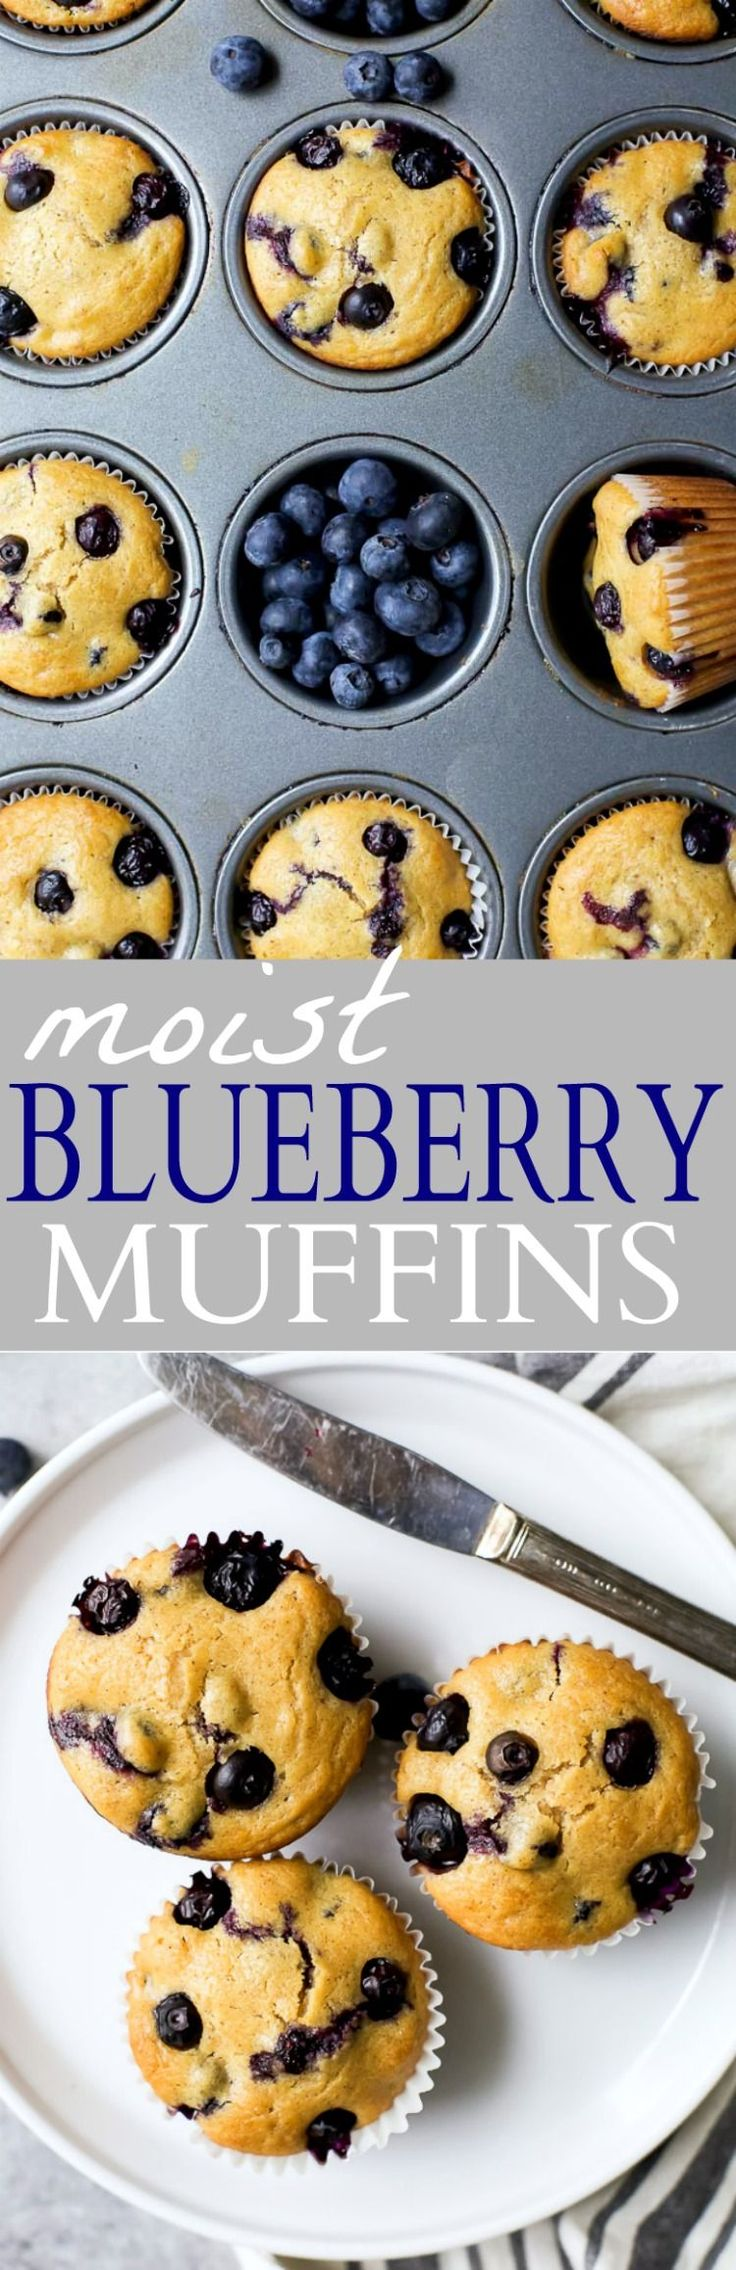 An easy homemade Blueberry Muffin Recipe the family will love.Moist Blueberry Muffins bursting with blueberry flavor! A perfect breakfast or after school snack option!